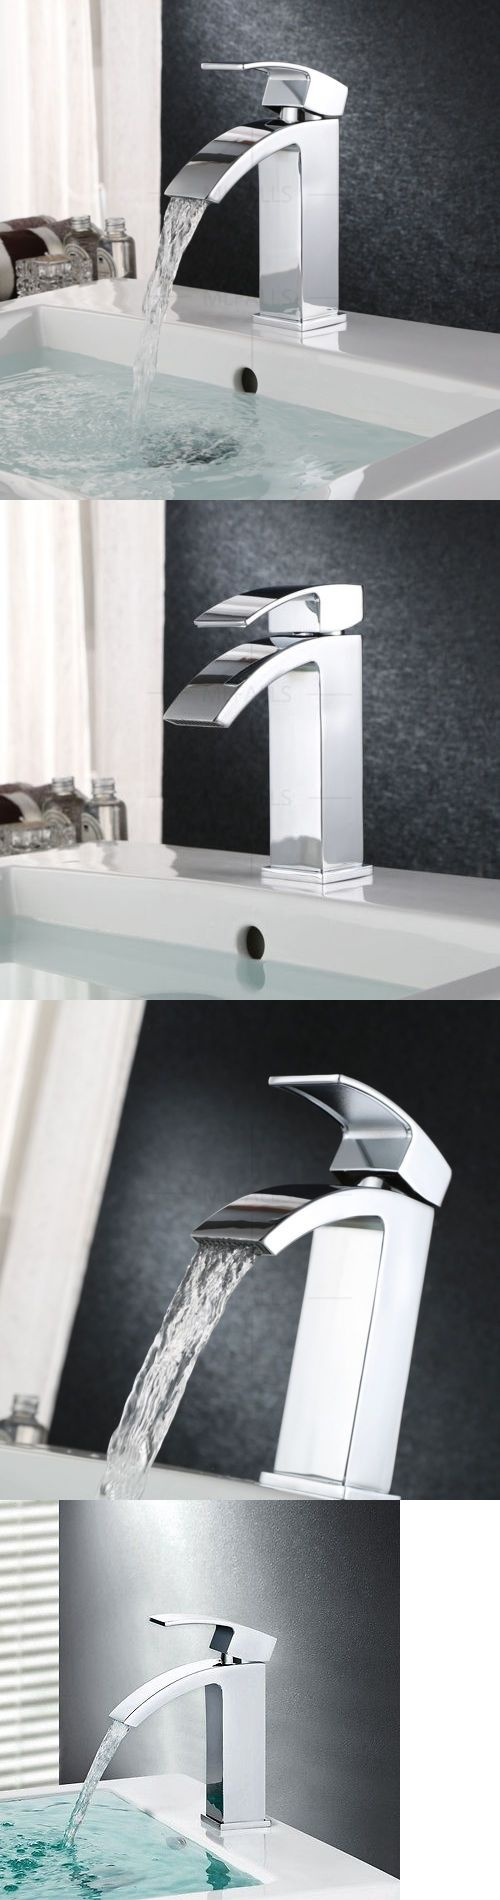 Bathroom sink faucet one hole double handle basin mixer tap ebay - Faucets 42024 Bathroom Basin Waterfall Faucet Vanity Sink Spout Wash Single Handle Mixer Taps